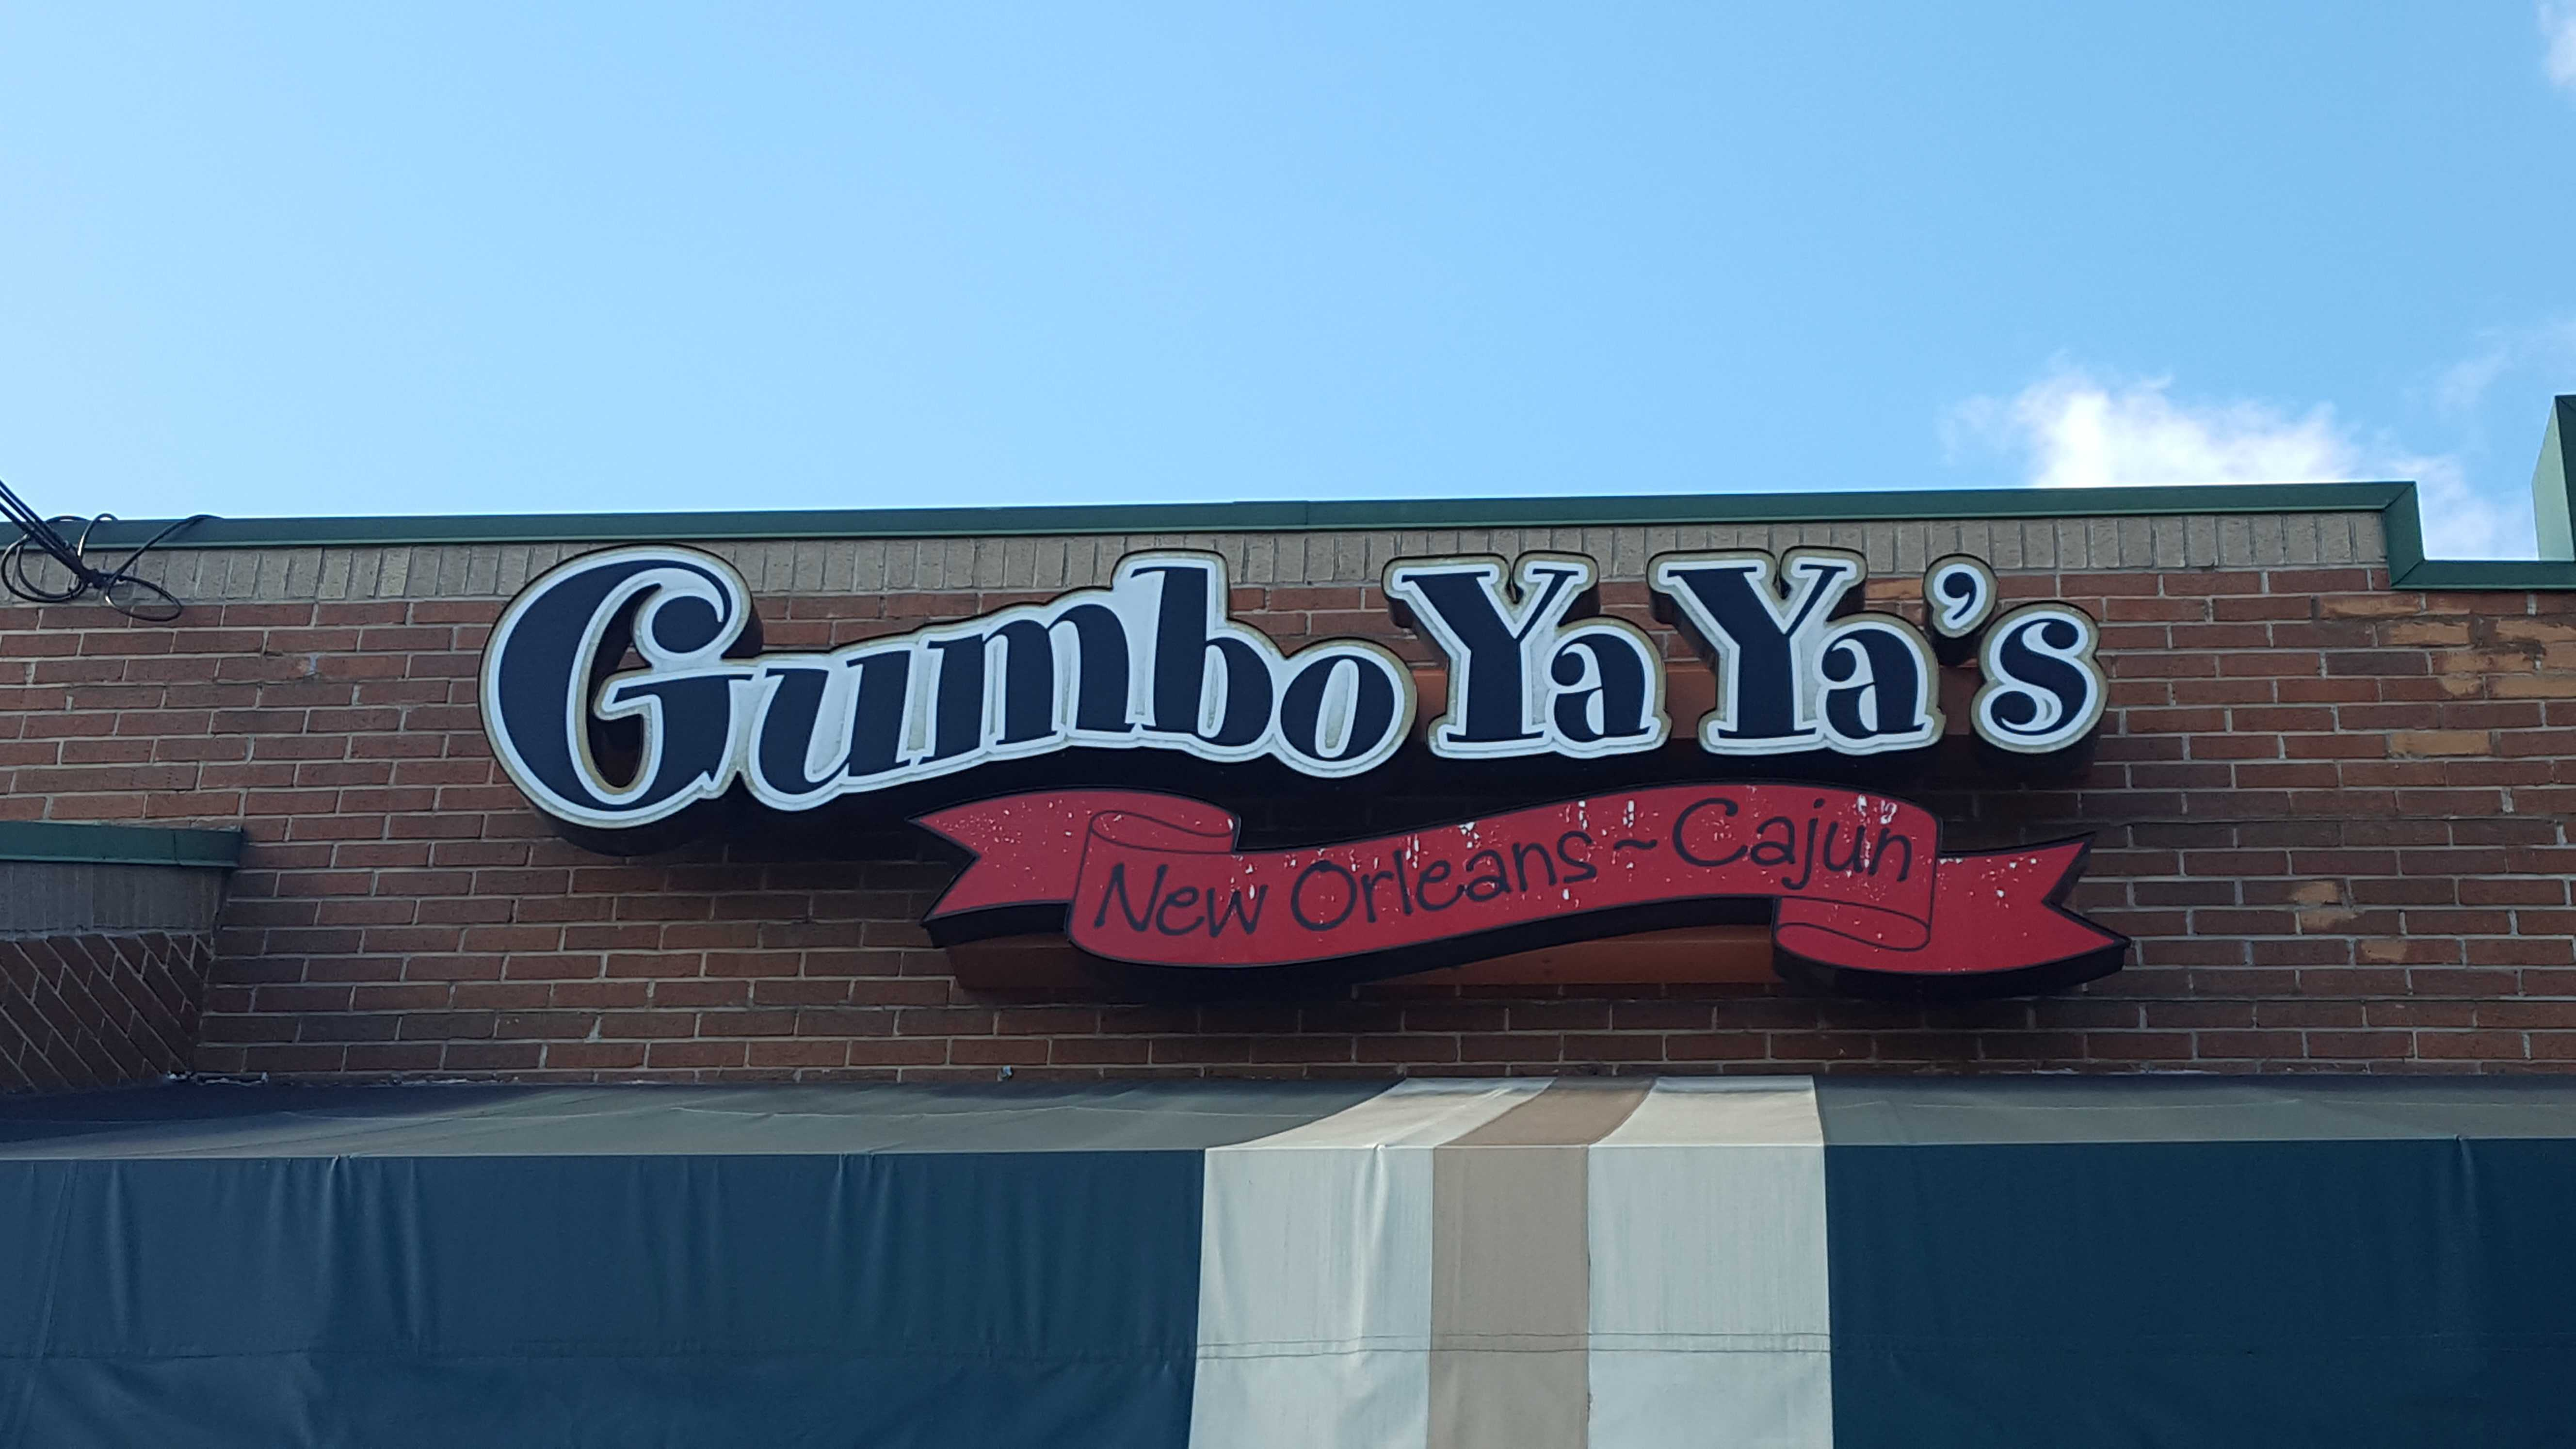 Local Eatery of the Week: Gumbo Ya Ya's